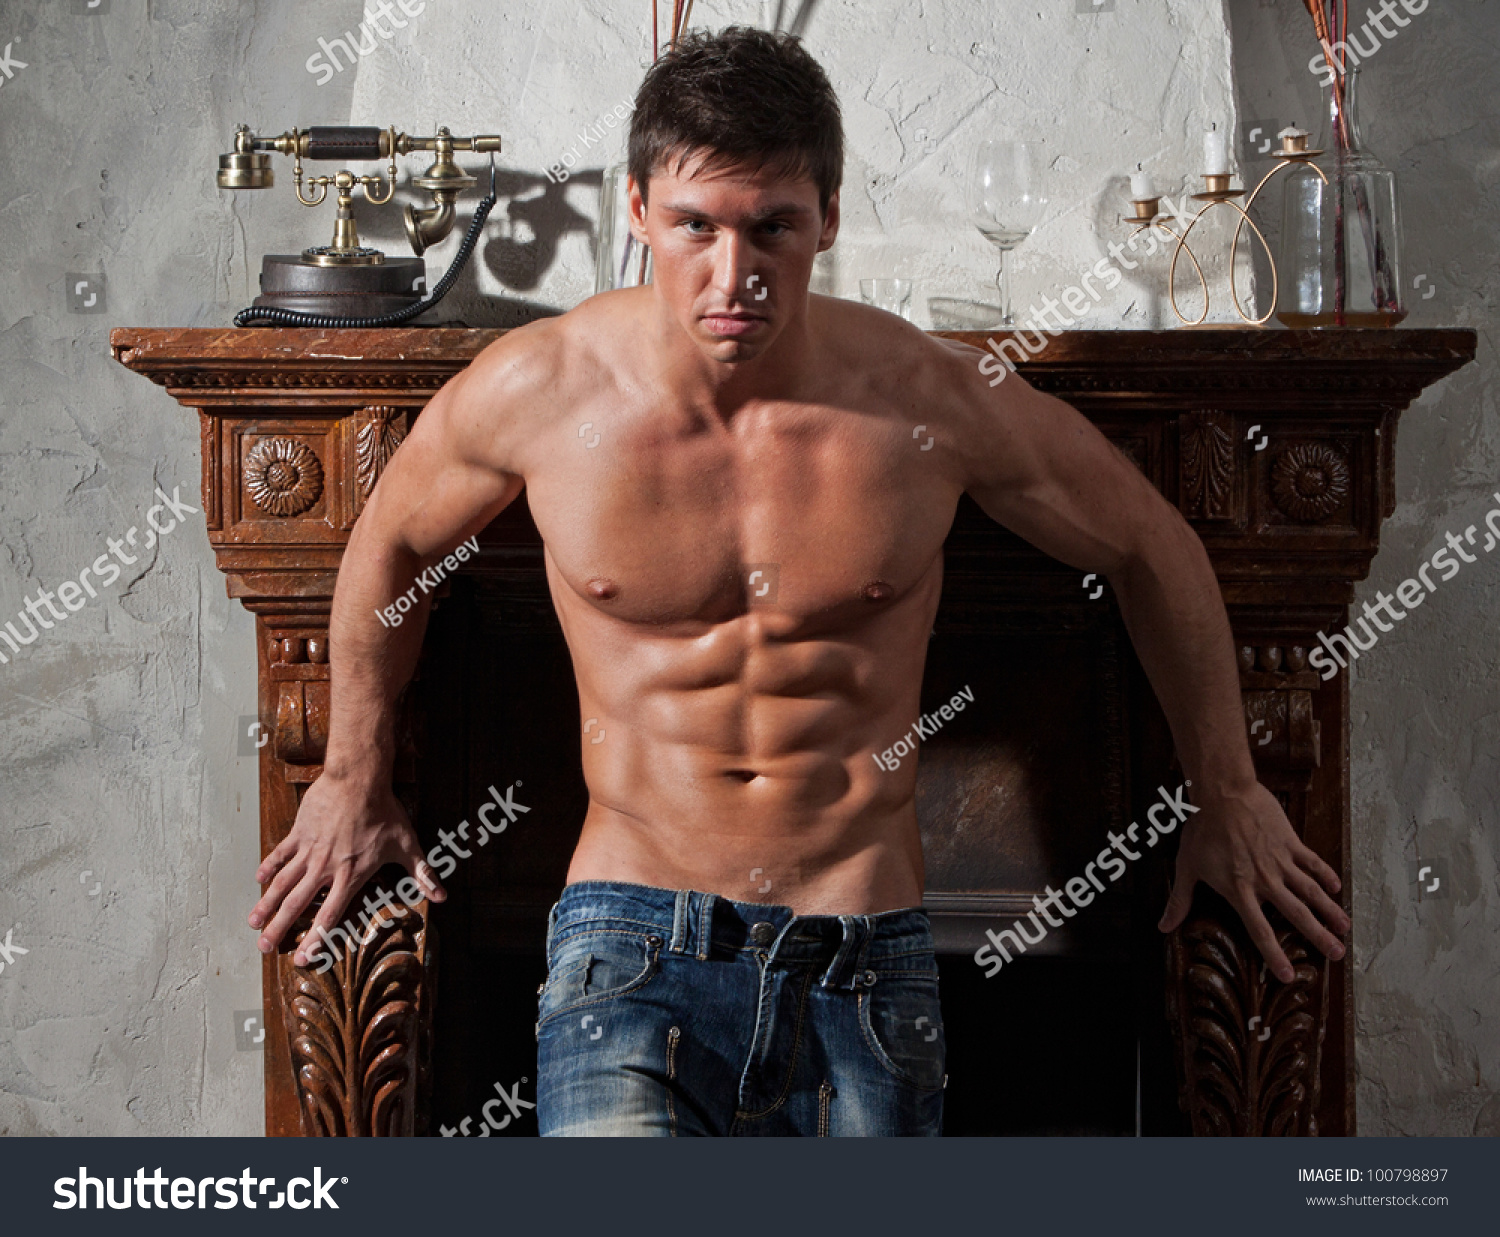 Muscular Young Bodybuilder Shirtless Outdoors Jeans Stock